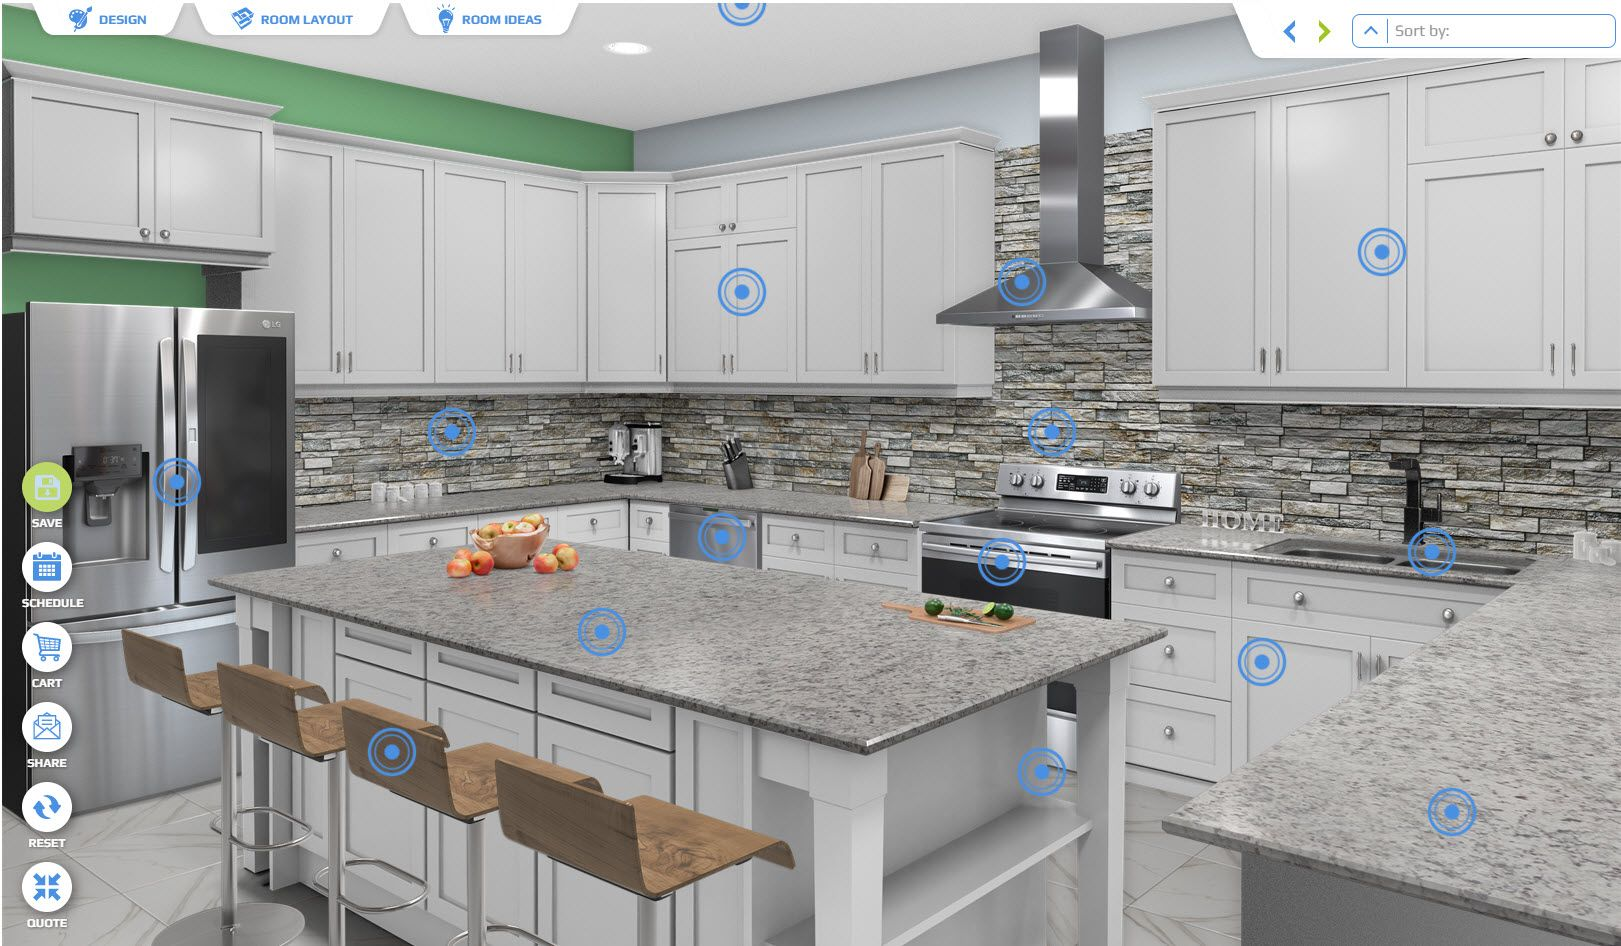 Kitchen Visualizer in 4  Kitchen visualizer, Kitchen